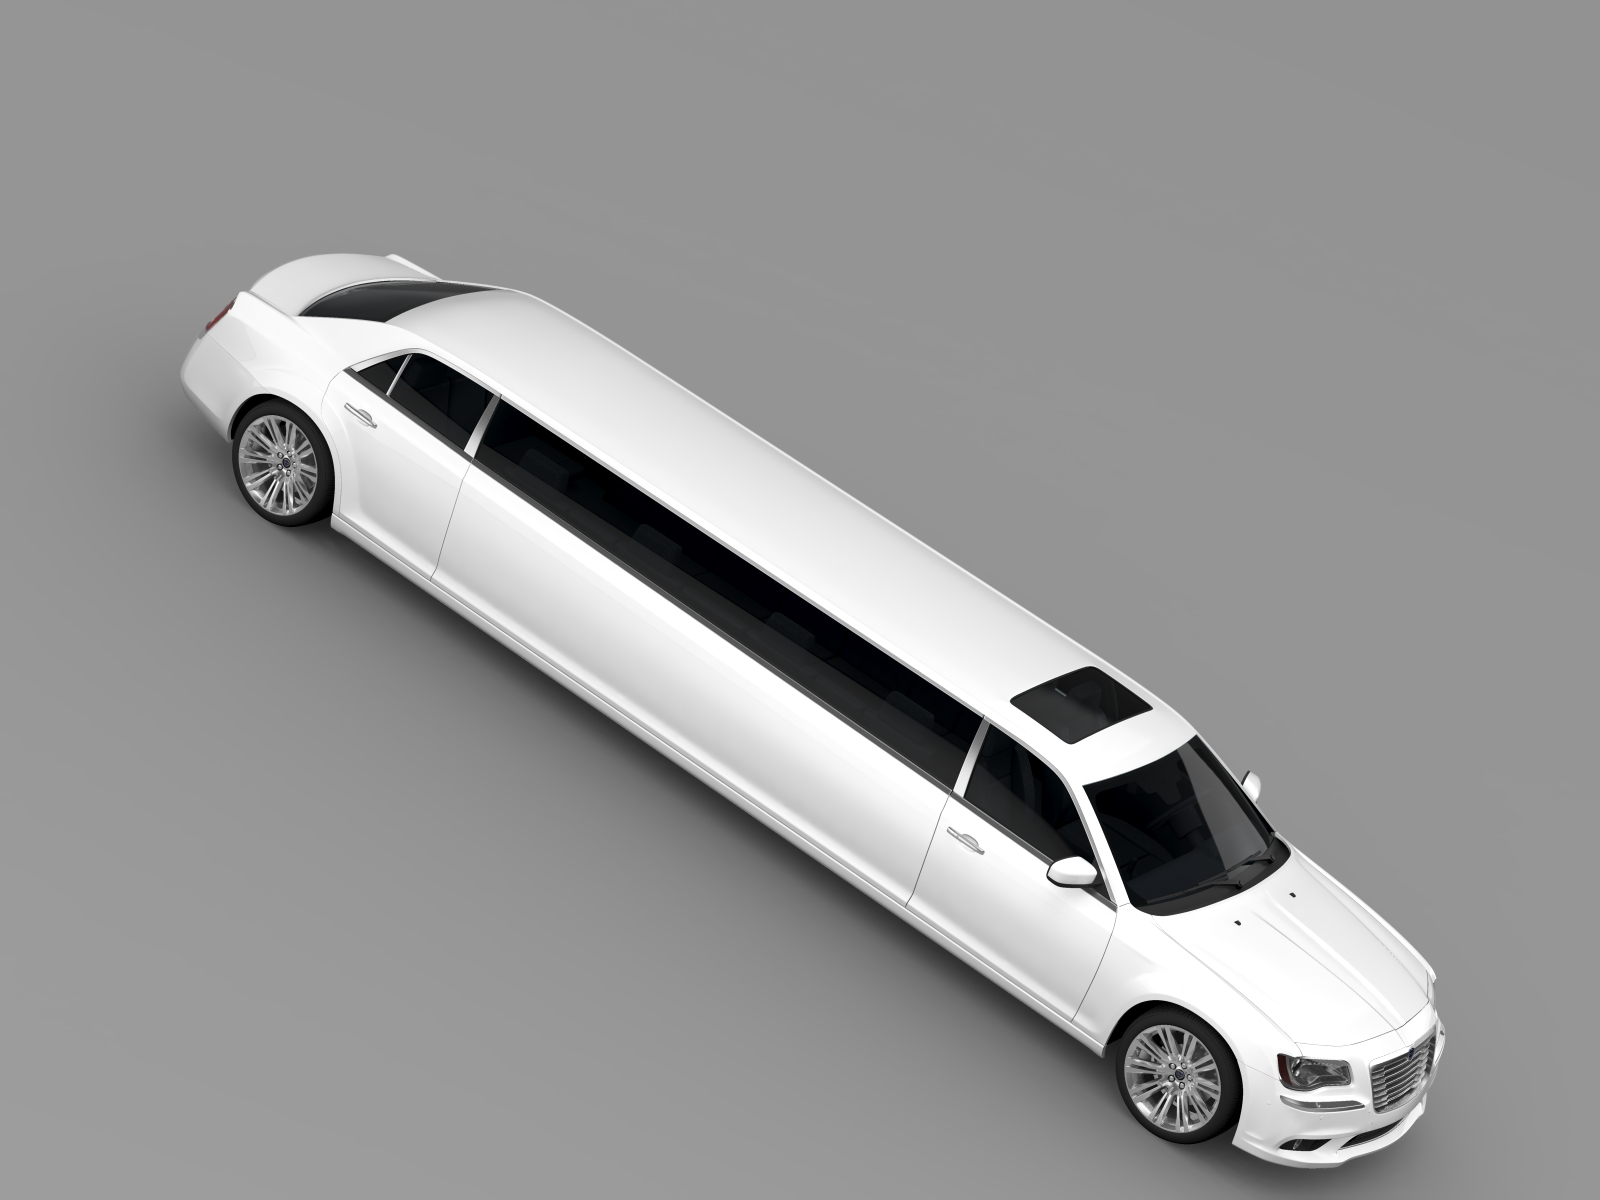 lancia thema limousine 3d model. Black Bedroom Furniture Sets. Home Design Ideas